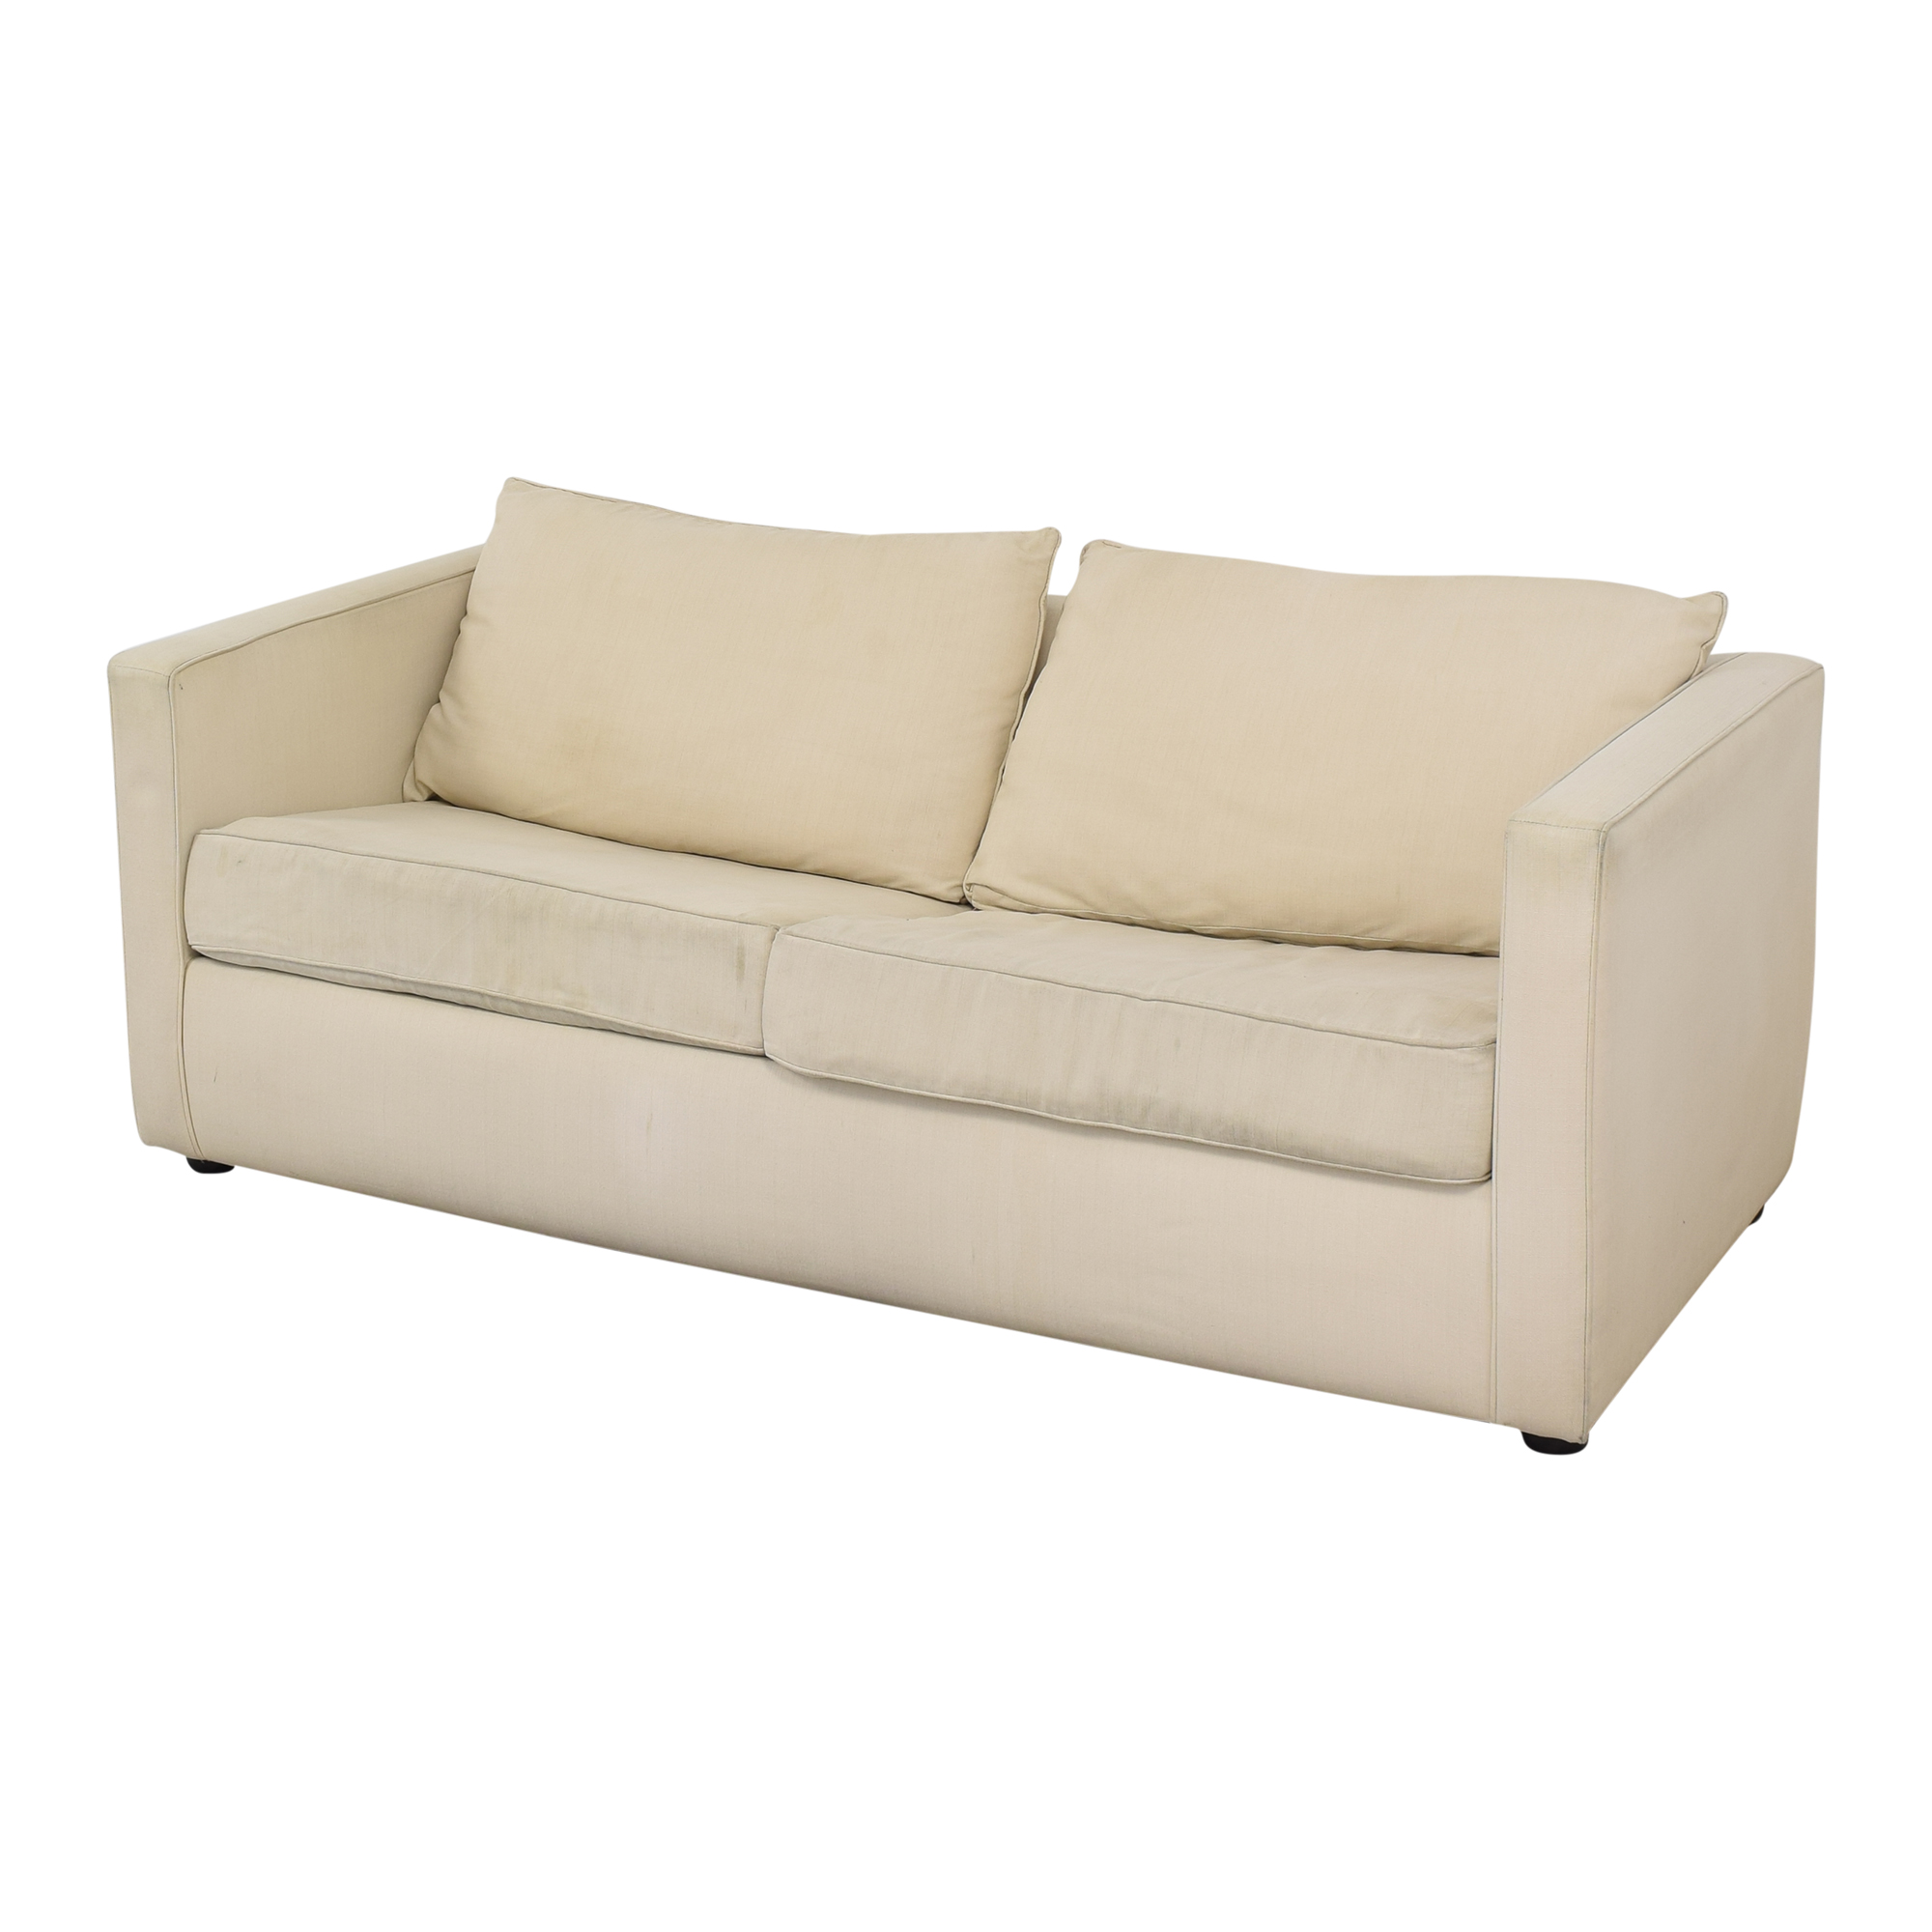 shop  KFI Single Cushion Sofa Bed online